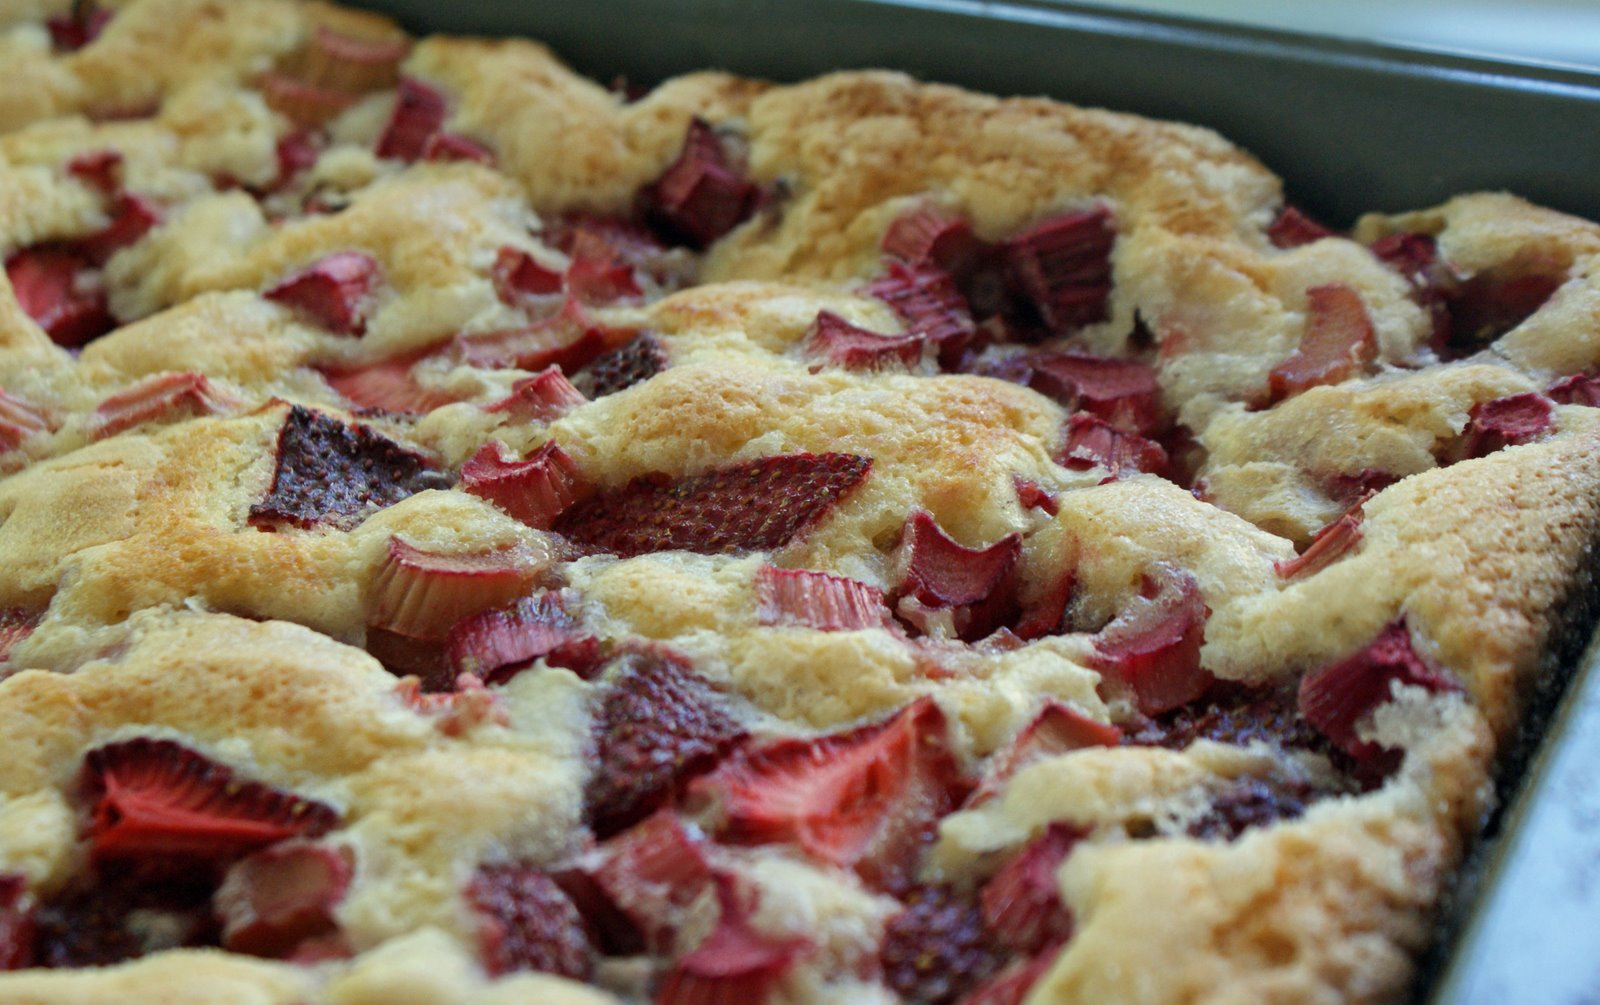 Strawberry-Rhubarb Cobbler Cake - Dinner With Julie